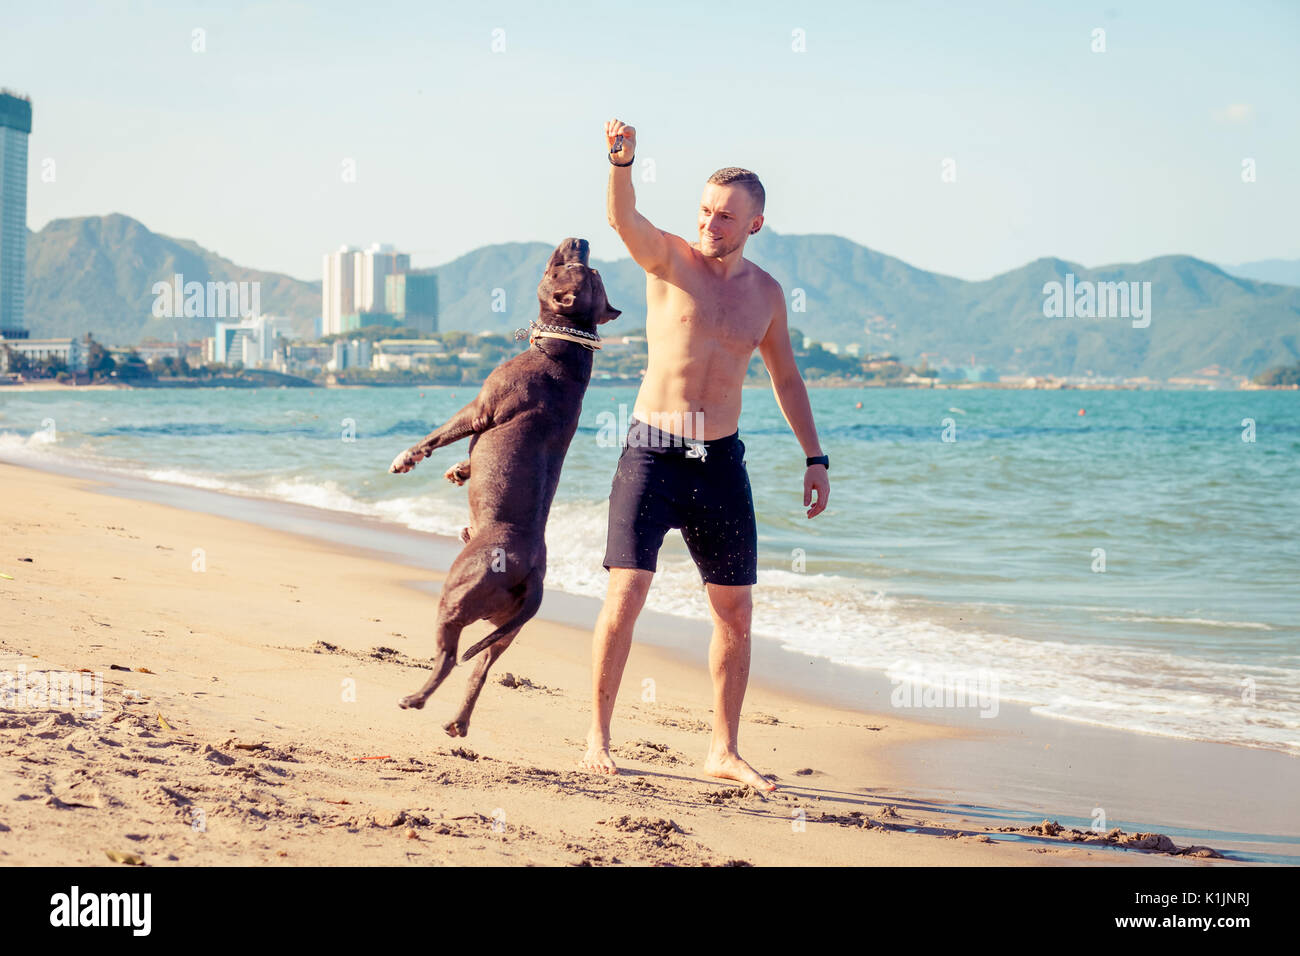 Man playing with dog american pit bull terrier on beach. Dog jumps high - Stock Image